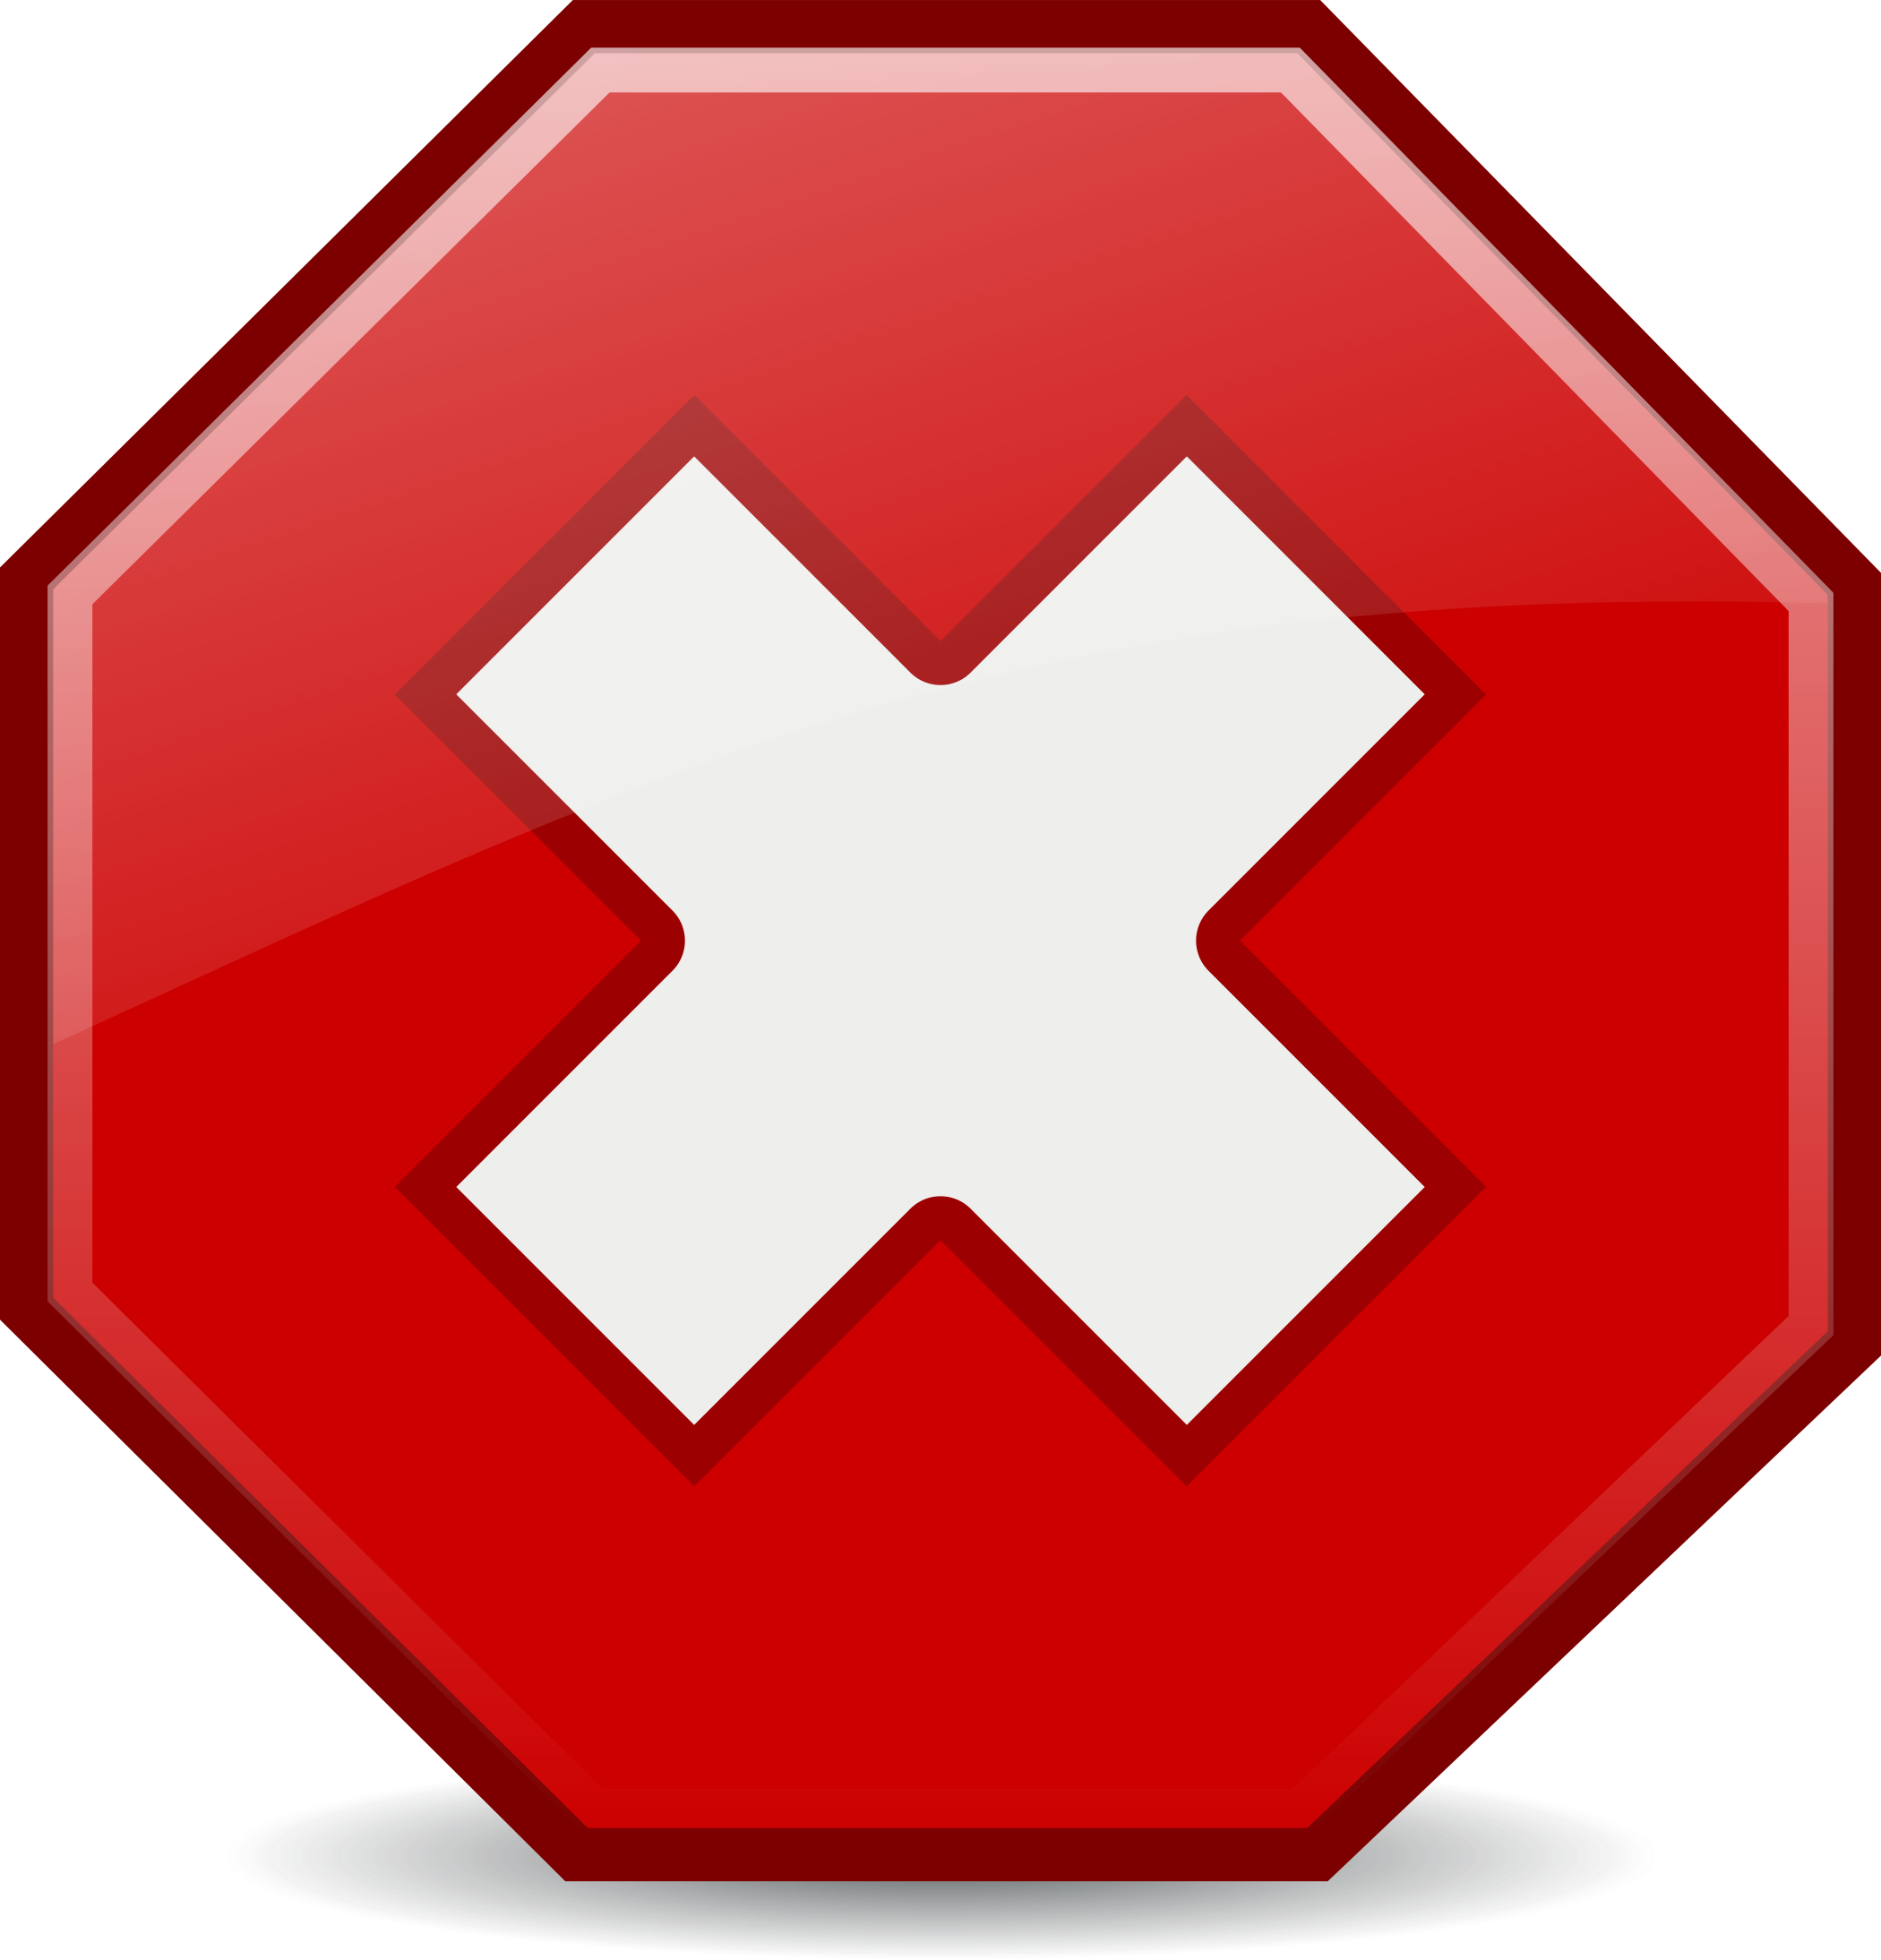 Stop clipart png. Process icons free and